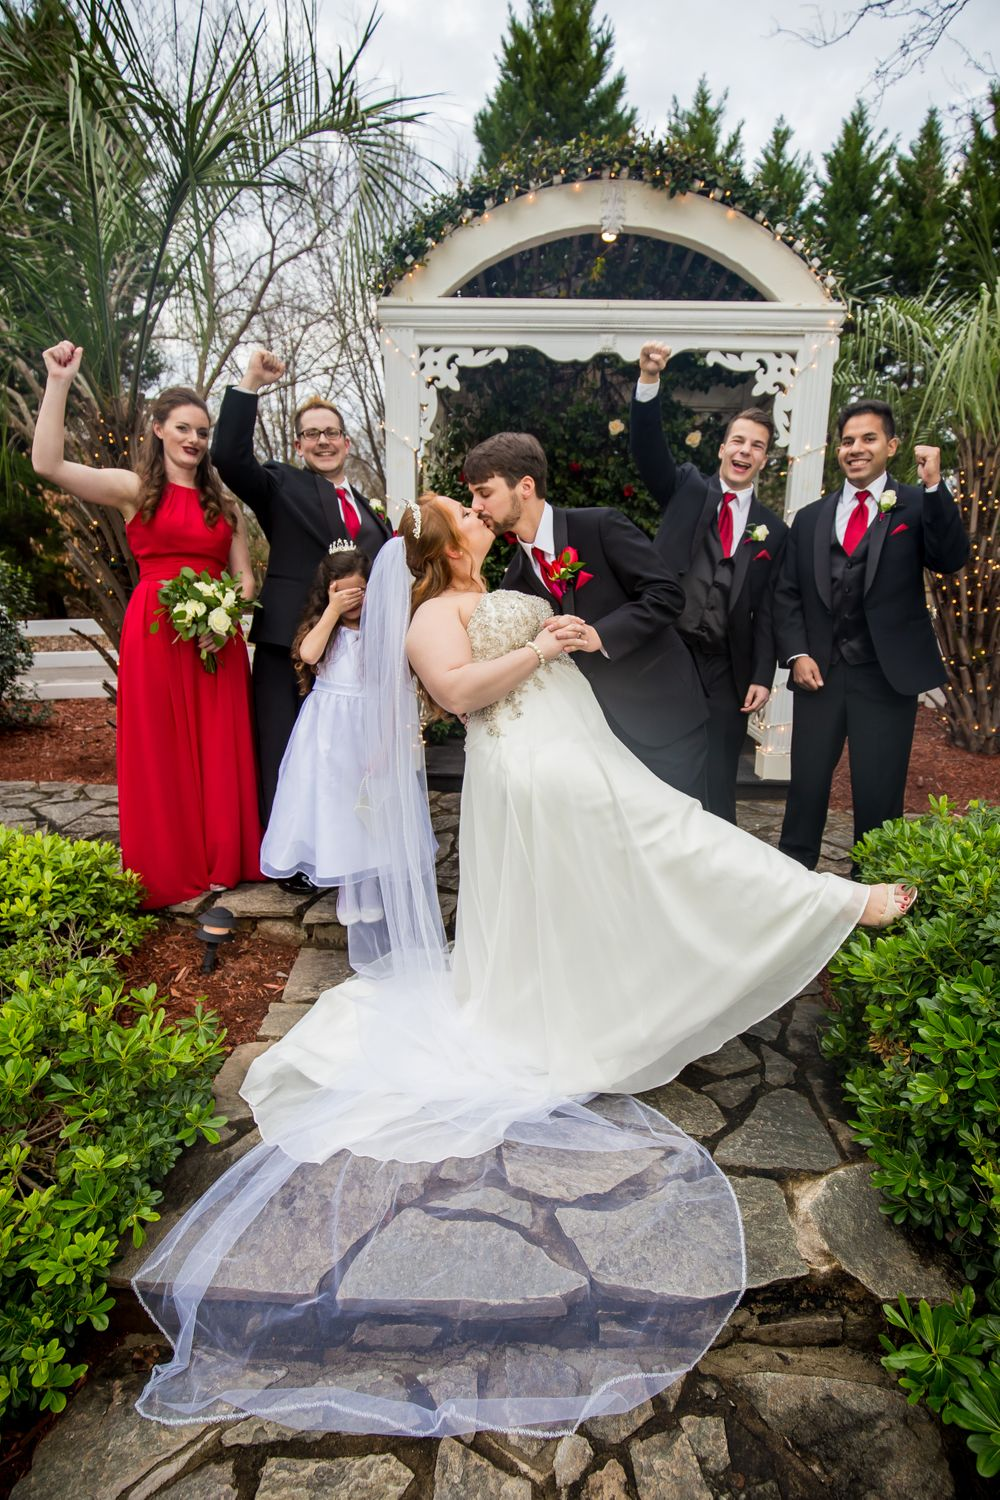 Bride and groom kiss and wedding party cheers during a portrait at Winter Green Woods in Lexington, SC